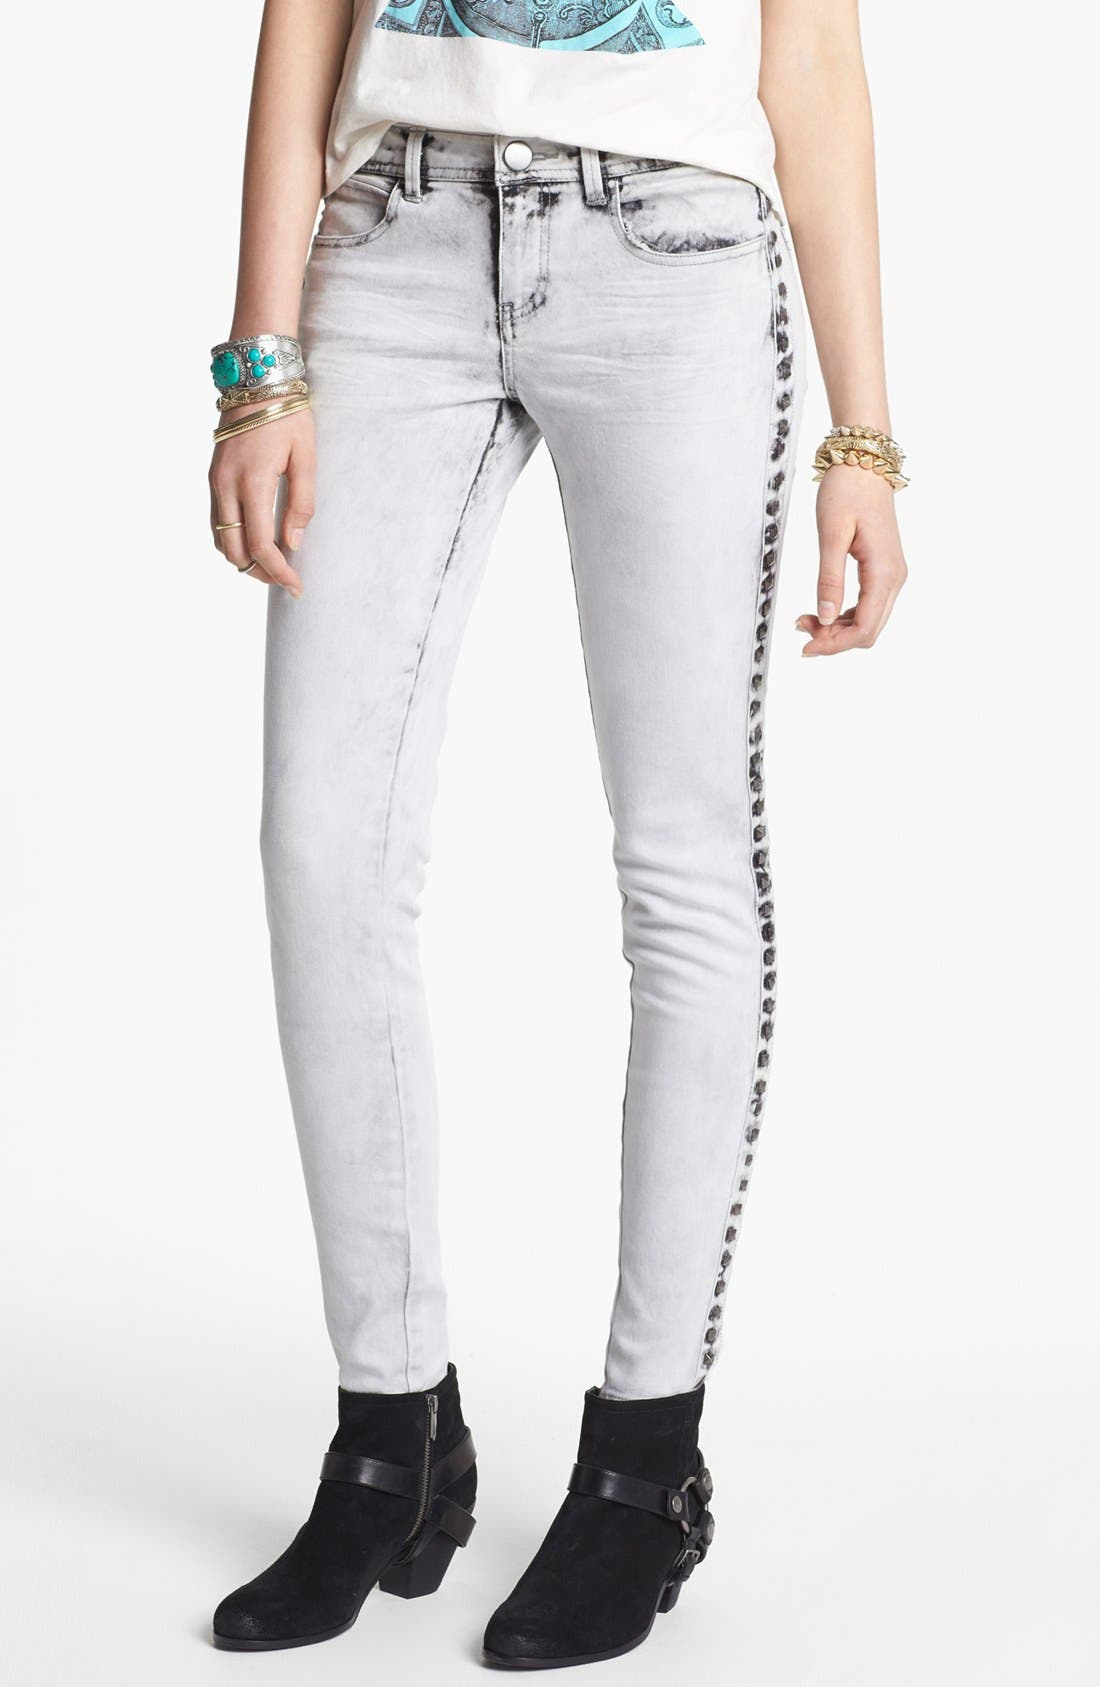 Main Image - Fire Studded Acid Wash Skinny Jeans (Grey) (Juniors)